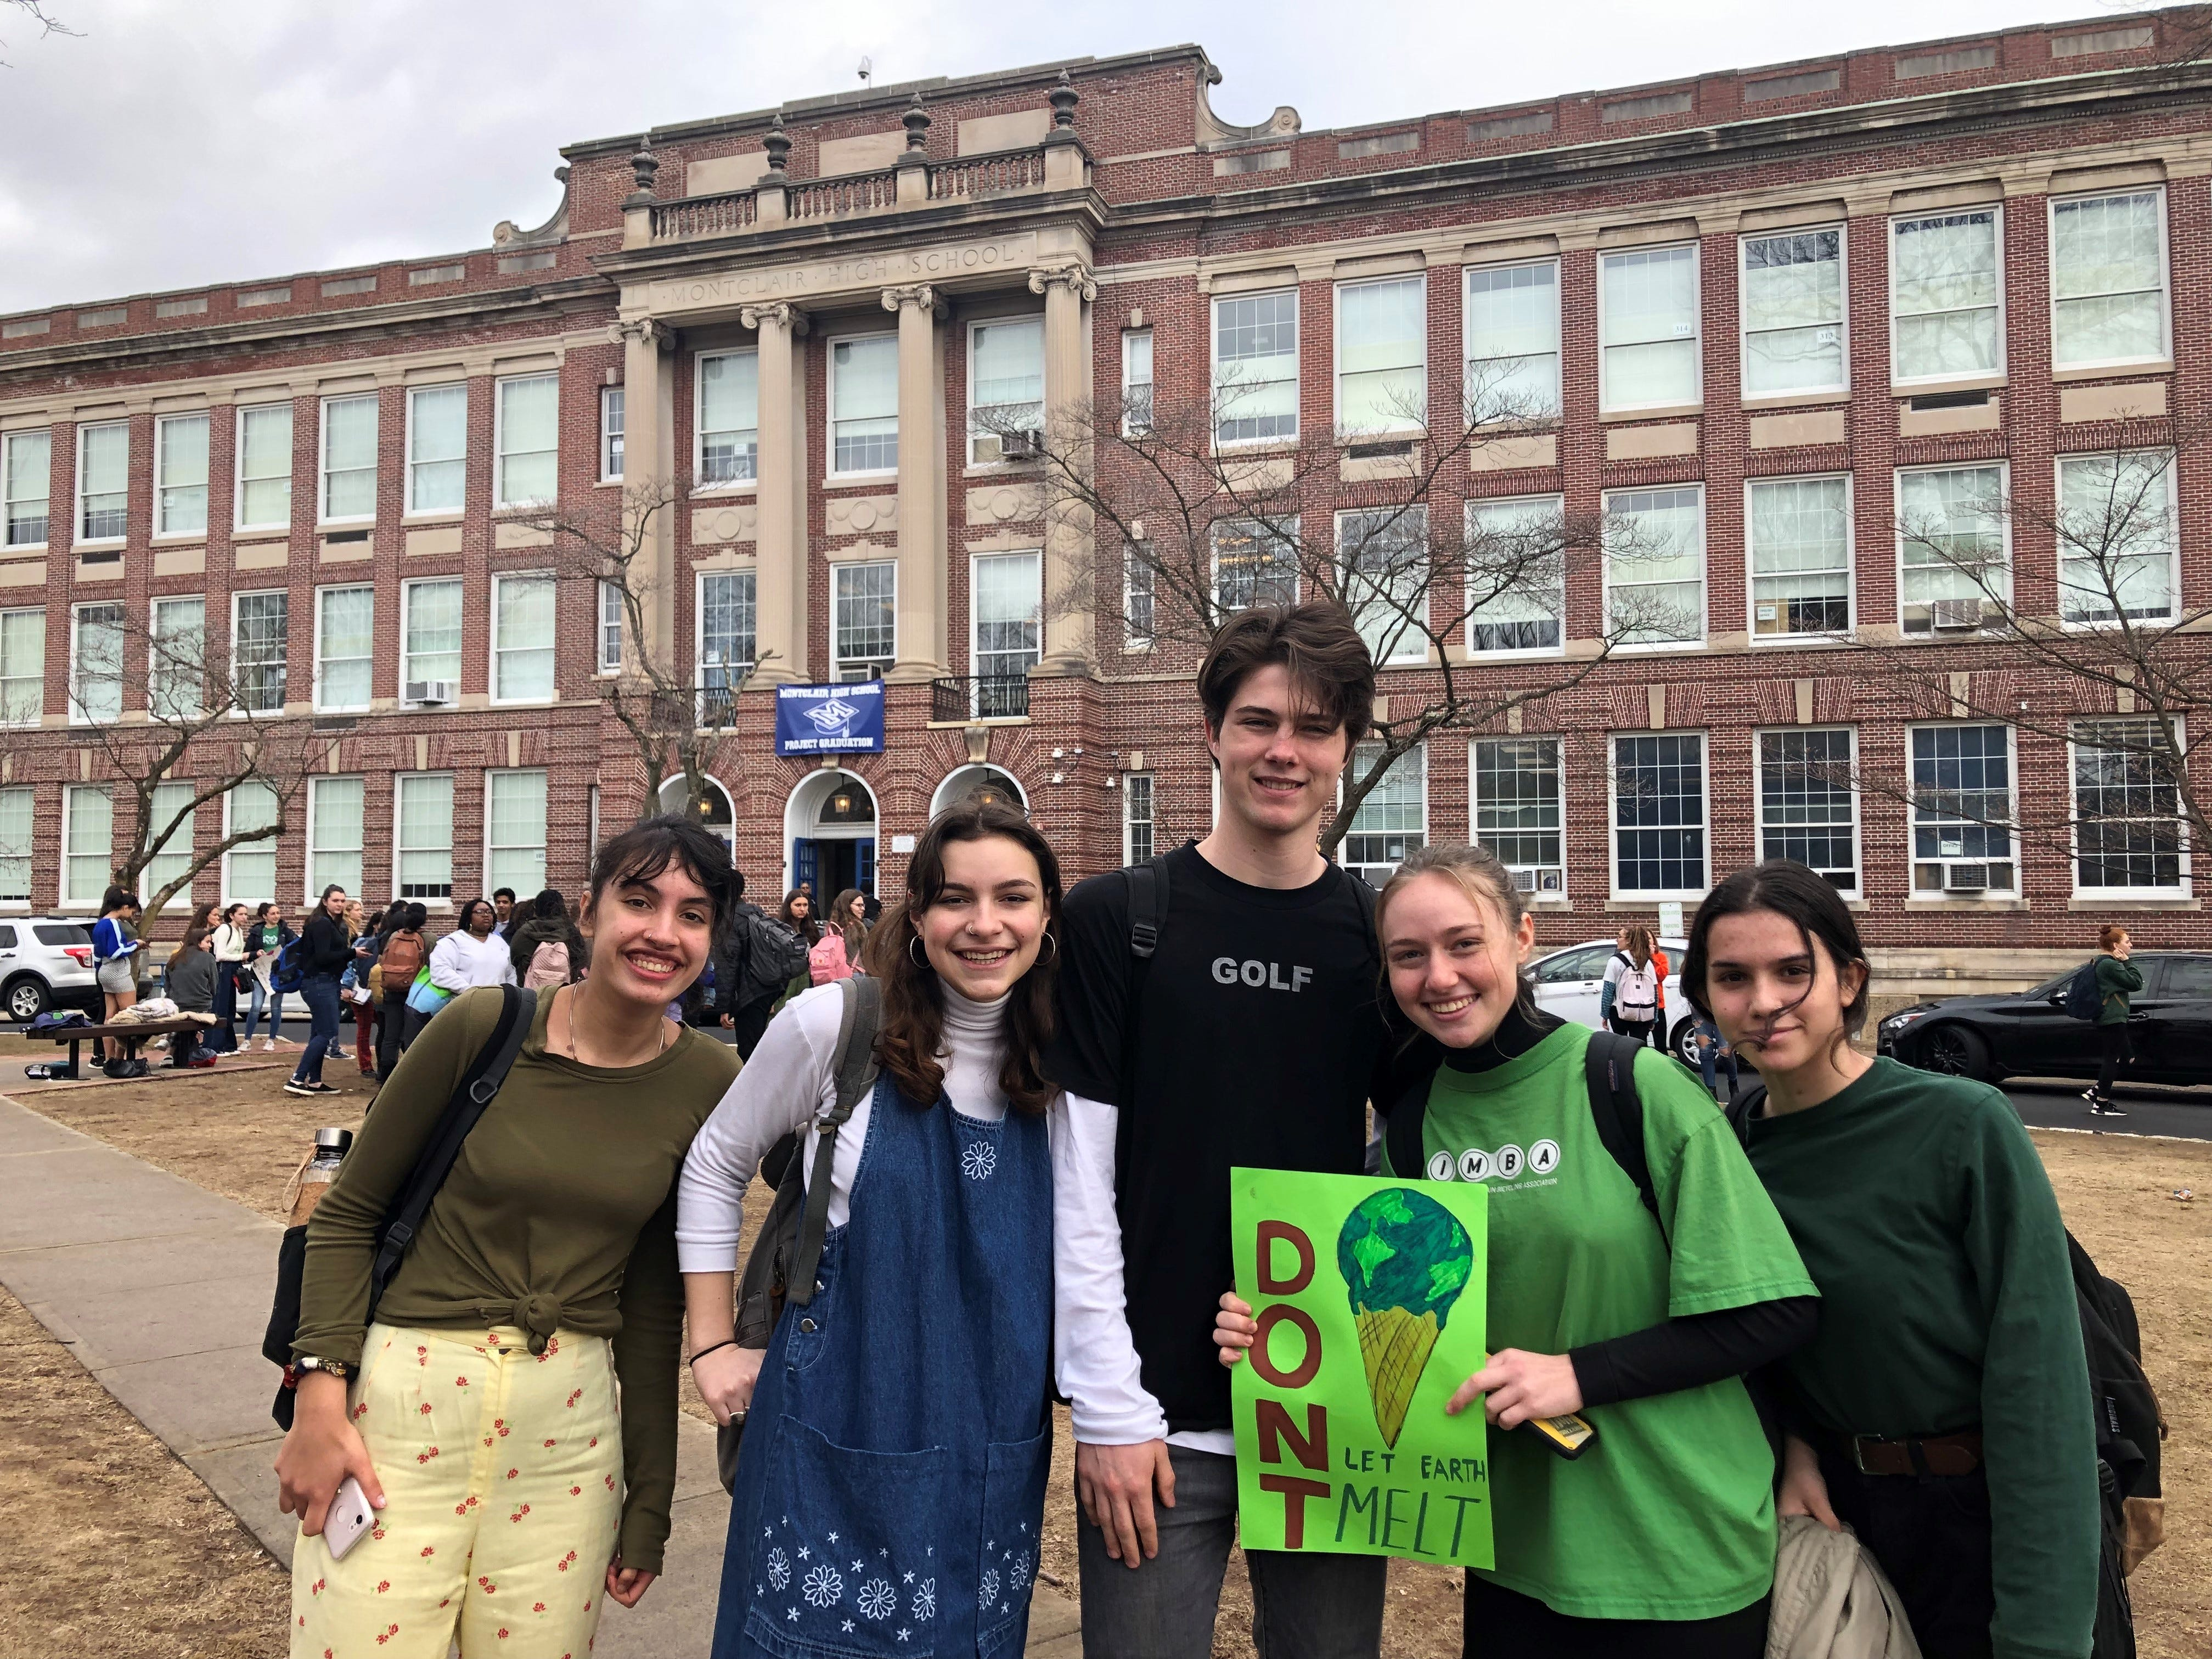 Students at Montclair High School participating in the worldwide Climate Strike on March 15, 2019.